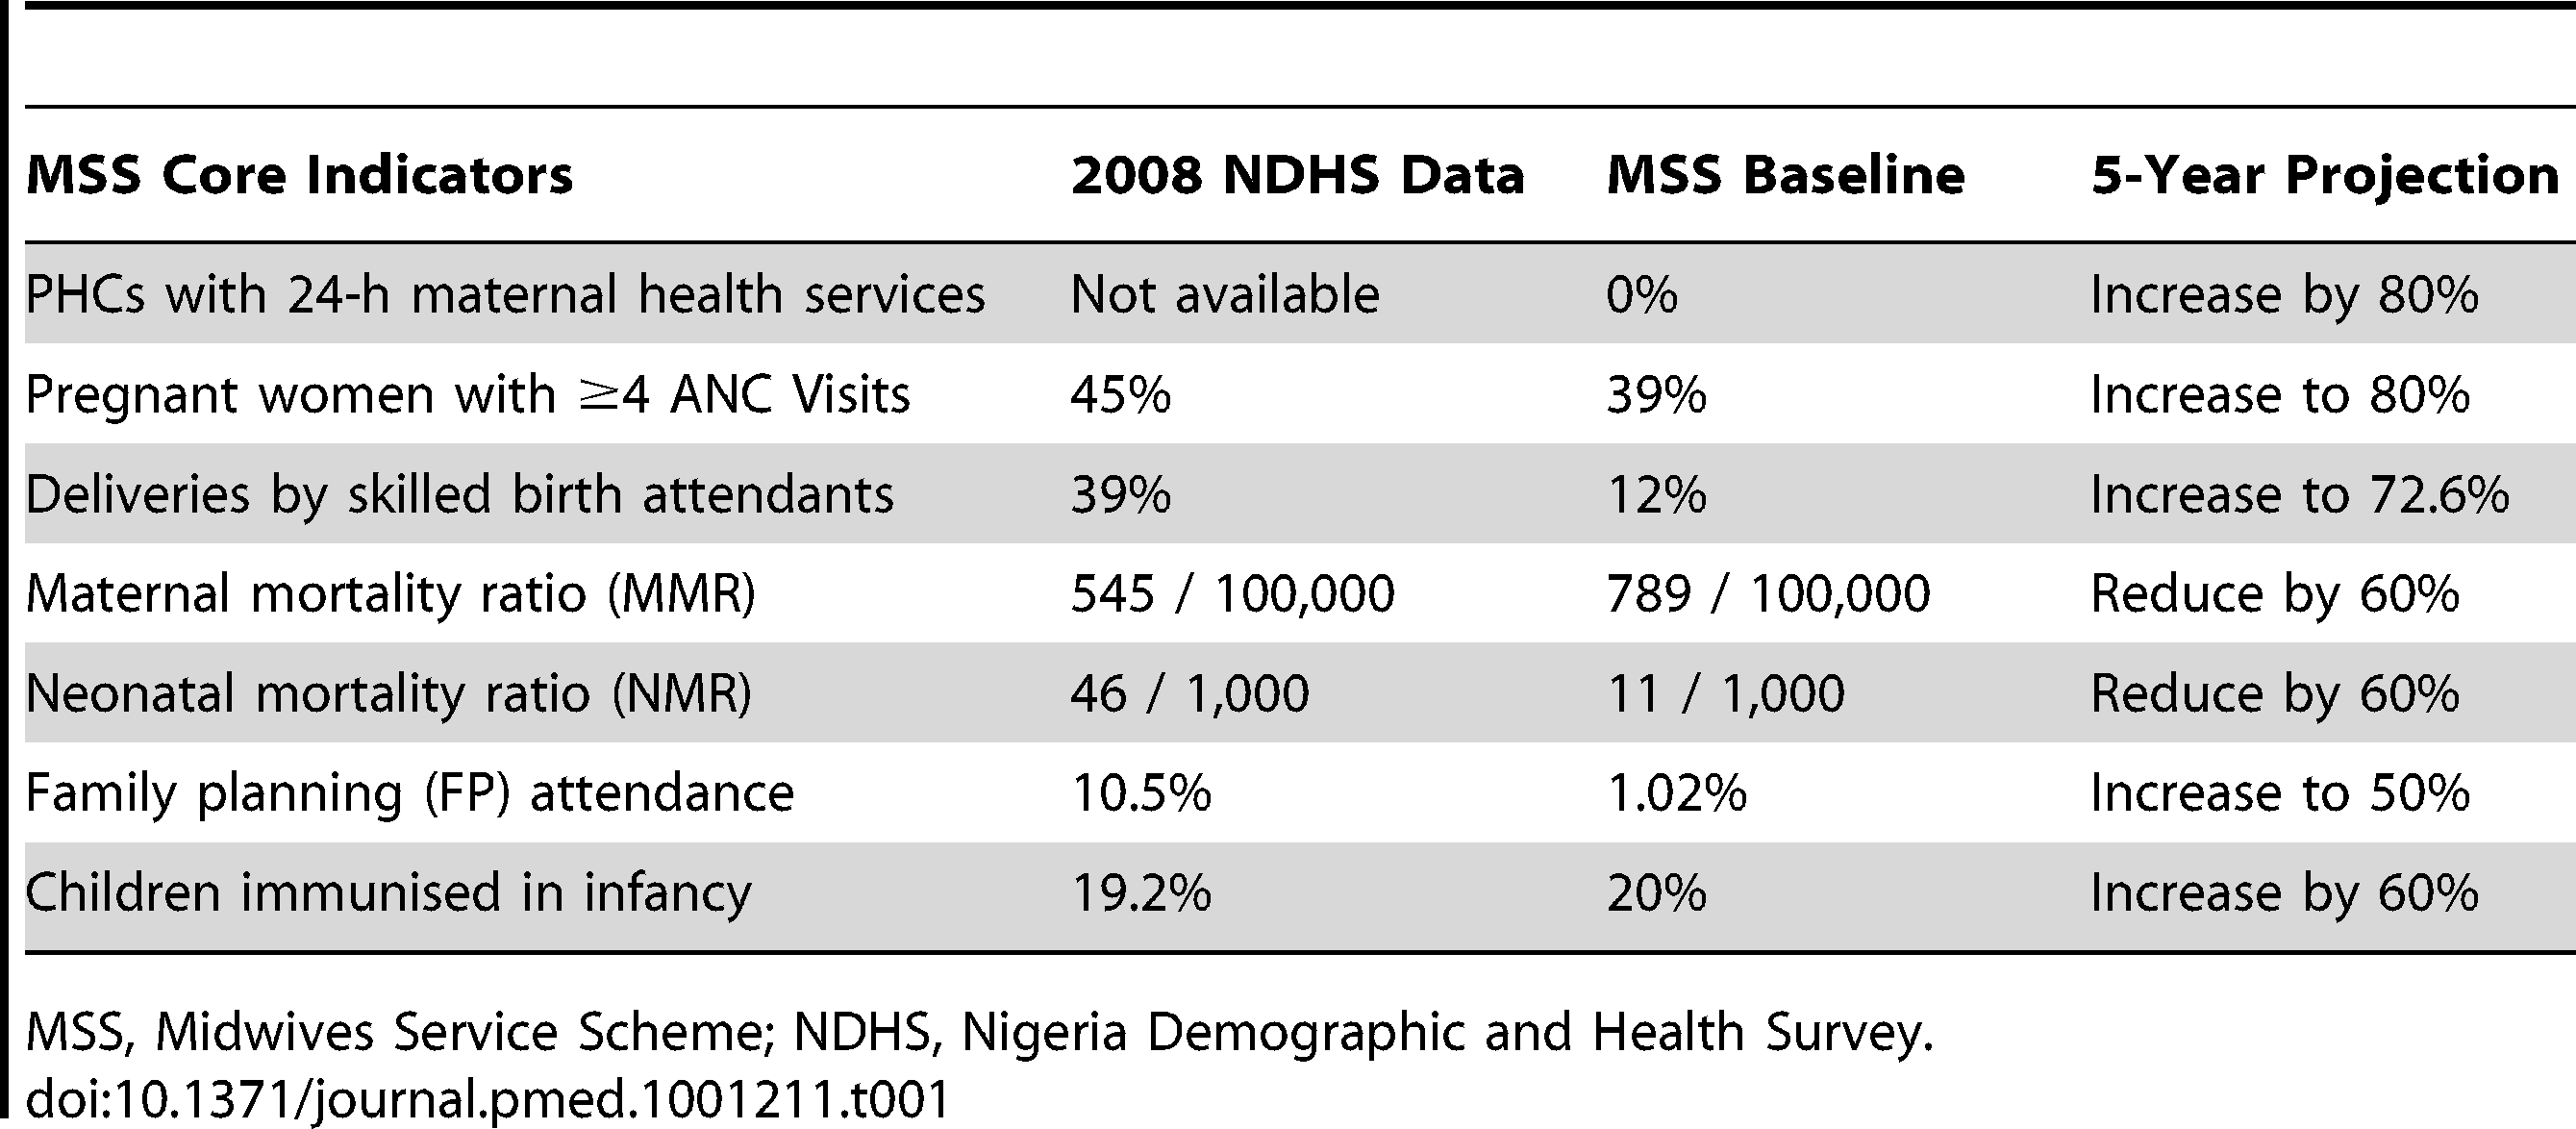 MSS core indicators and projected outcome, with data comparing 2008 NDHS with MSS facility baseline data.